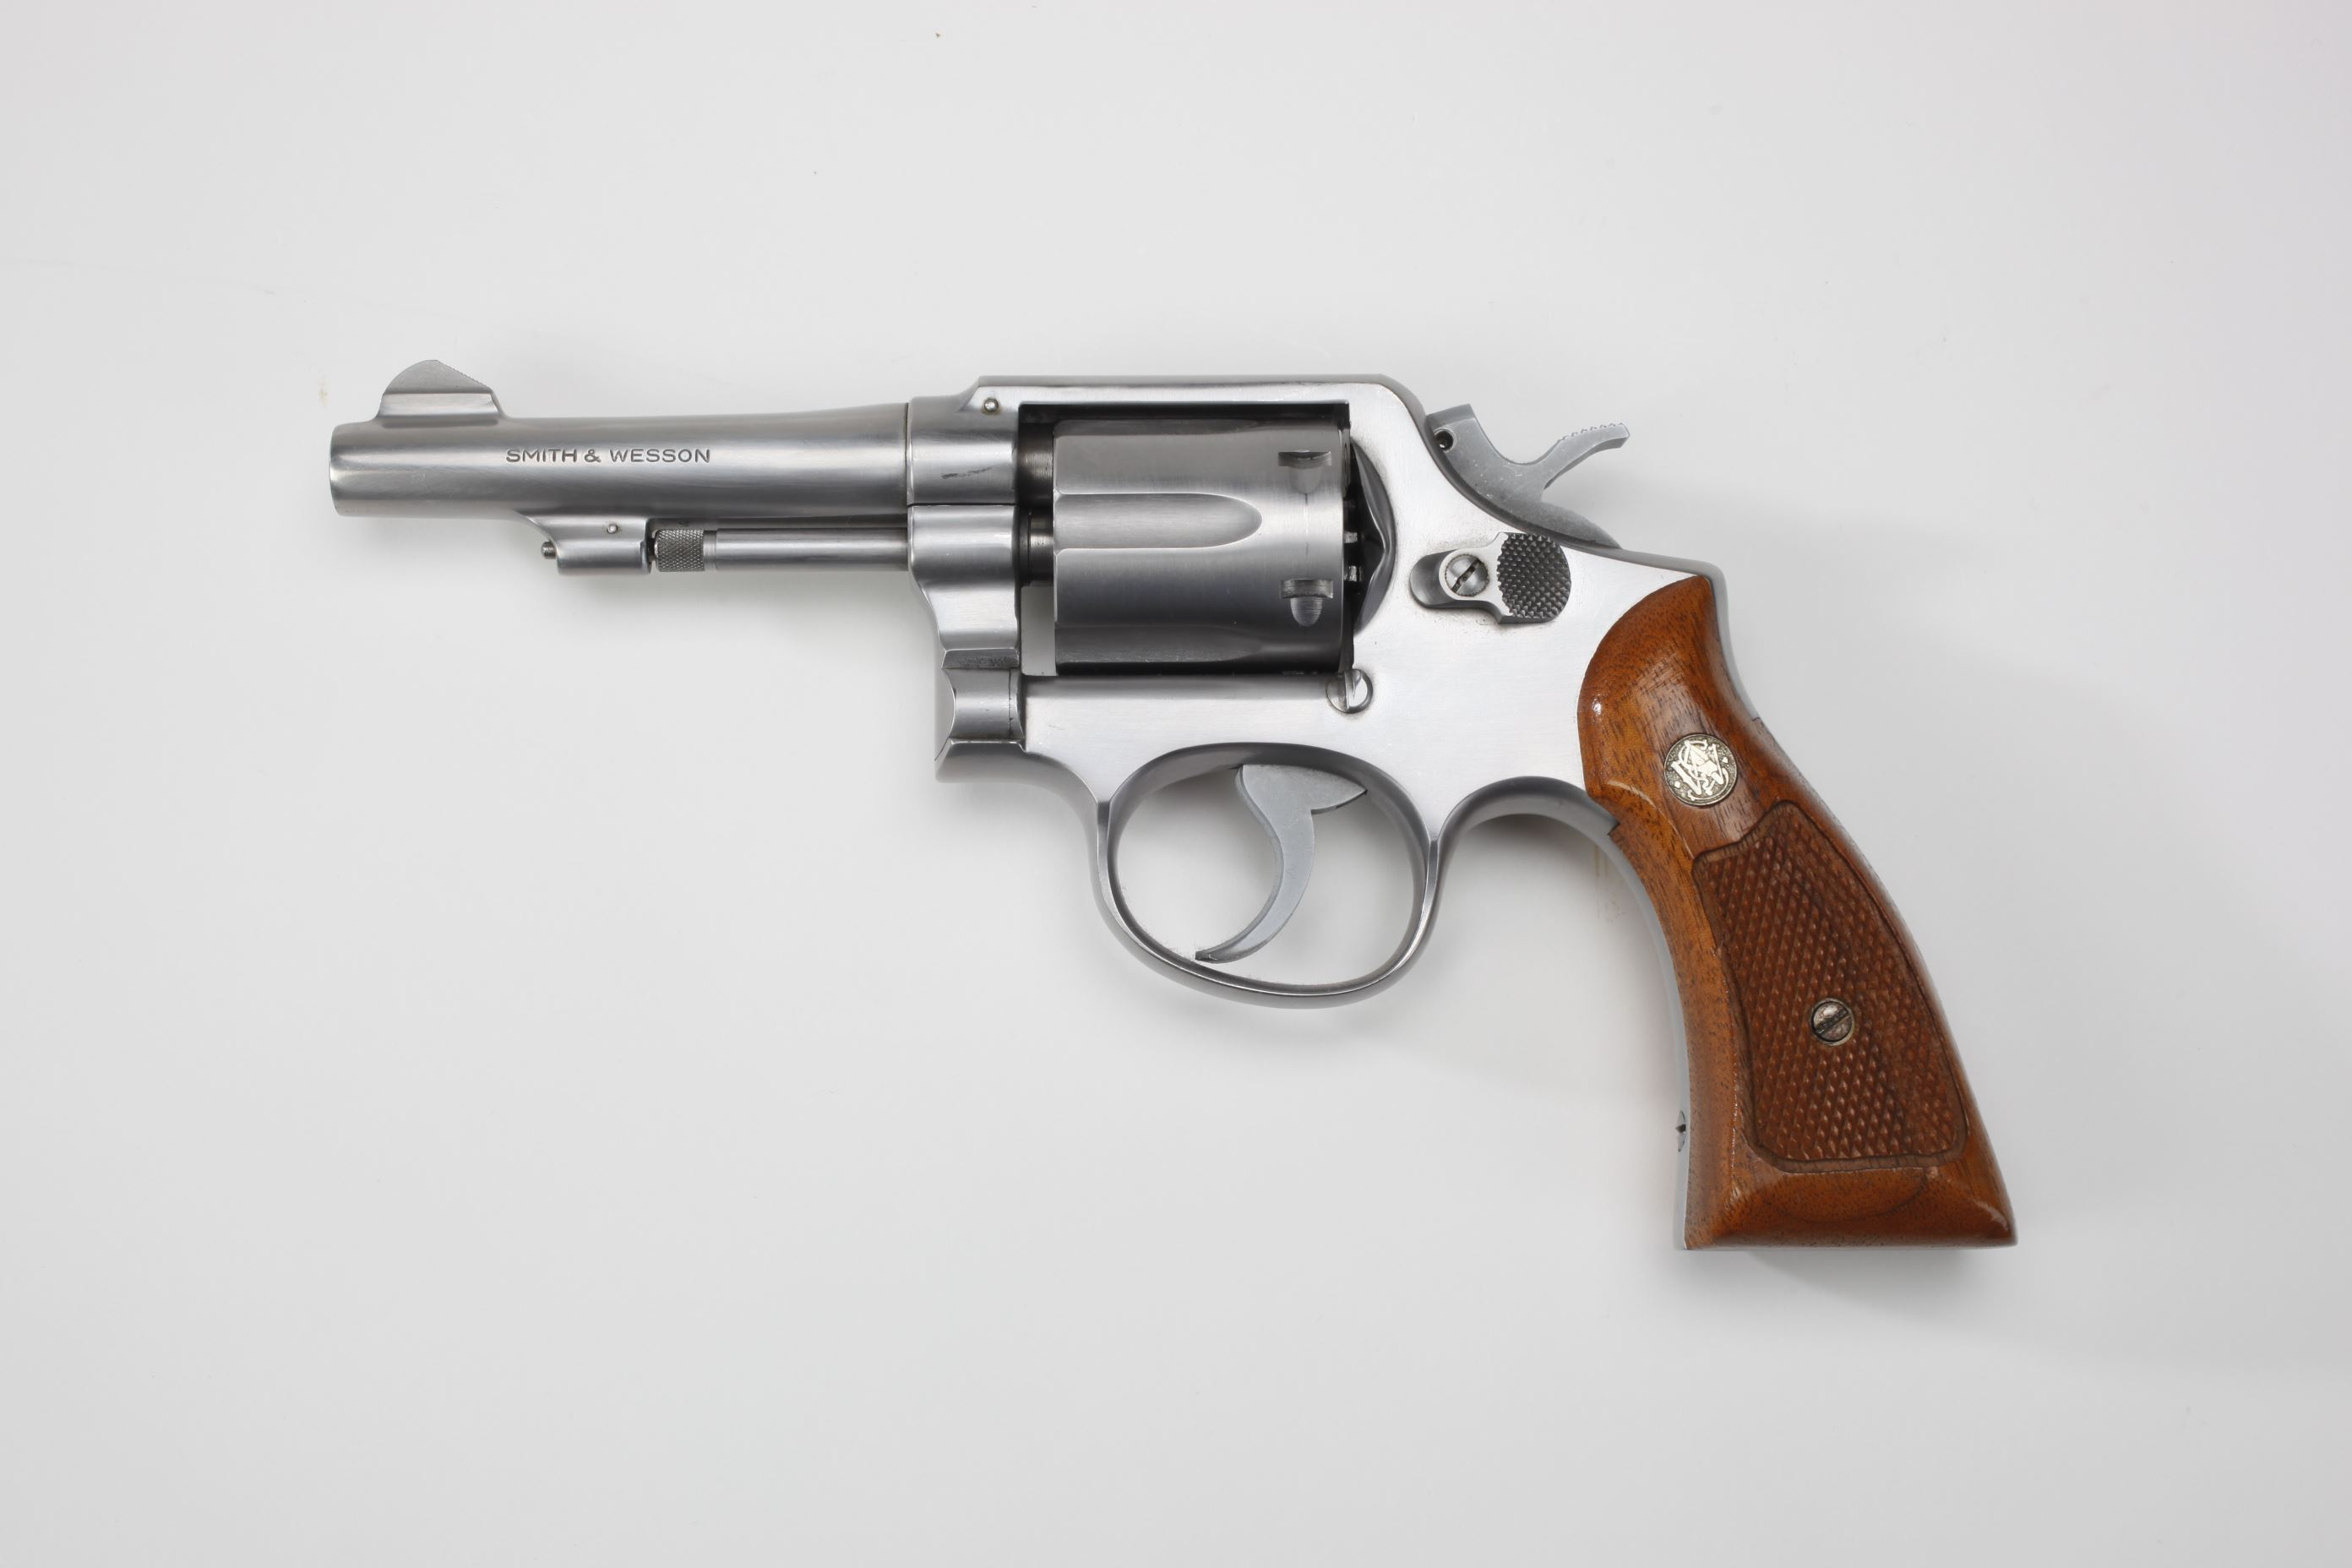 Smith & Wesson Model 64 Military and Police revolver